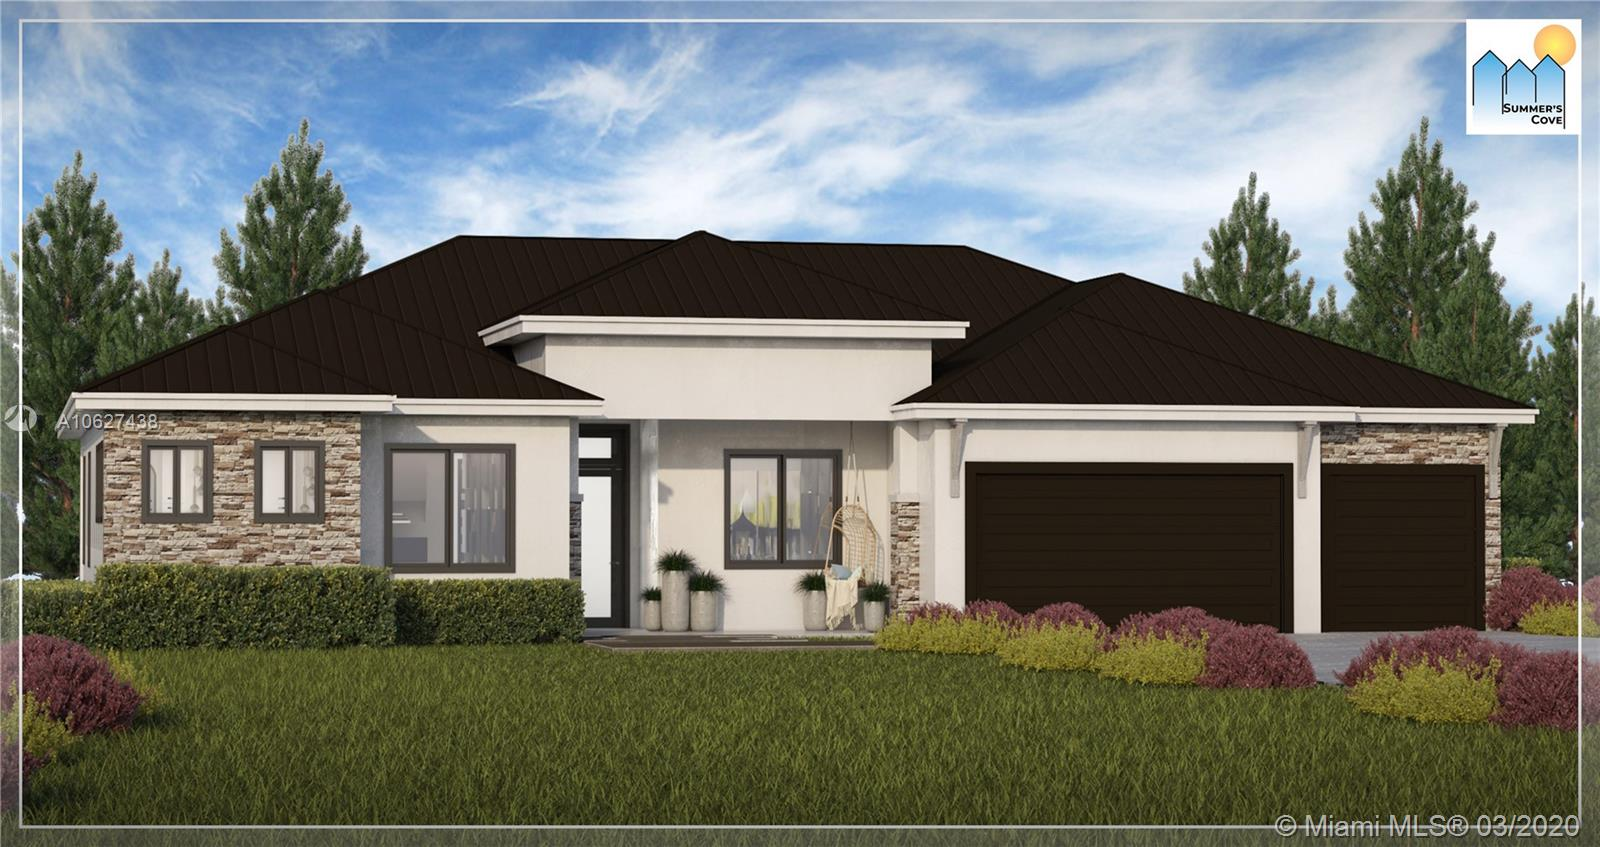 BRAND NEW PRE-CONSTRUCTION-2 HOMES. EACH WILL BE LOCATED ON A 1/2 ACRE LOT AND WILL FEATURE 4 BEDROOMS, DEN, LIBRARY, 3 BATHS AND 3 CAR GARAGE AND HAVE 2,900 SQ FT UNDER AIR.  BOTH HOMES WILL INCLUDE IMPACT GLASS WINDOWS, STAINLESS STEEL APPLIANCES, QUARTZ COUNTERS IN THE KITCHEN. METAL ROOFS, PAVERS ON DRIVEWAY & WALKWAY & MUCH MORE!  RESERVE NOW AND YOU CAN PICK YOUR OWN FINISHES. CONSTRUCTION WILL TAKE APPROX 5 MONTHS ONCE STARTED. BUILDER OFFERING UP TO 3% CONTRIBUTION TOWARDS CLOSING COSTS IF BUYER USES BUILDER'S PREFERRED LENDER AND PREFERRED TITLE COMPANY.